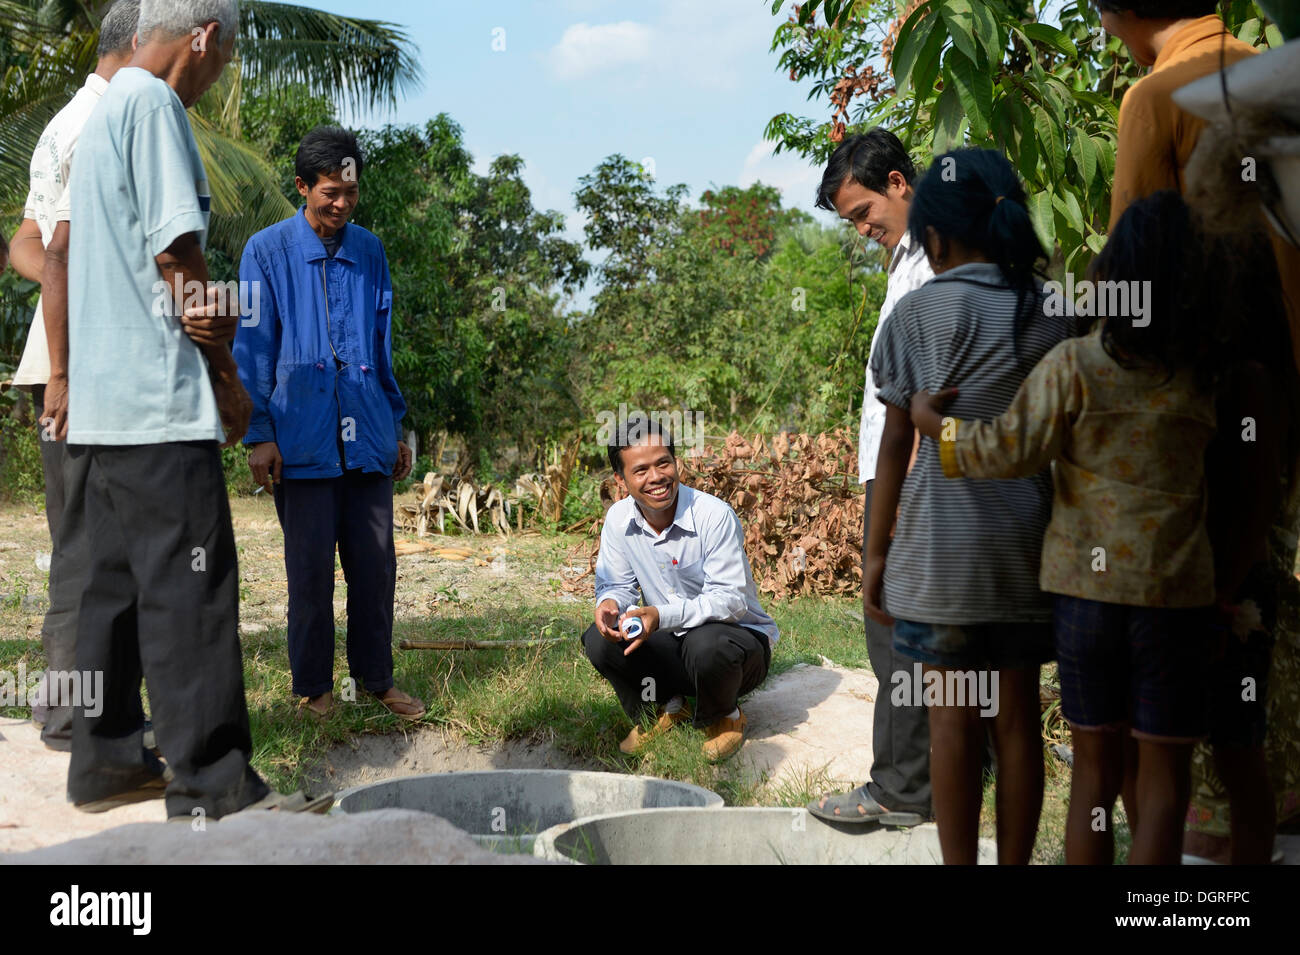 Cambodia, Takeo Province, Members of aid organisation discussing improvements of water supply with villagers - Stock Image